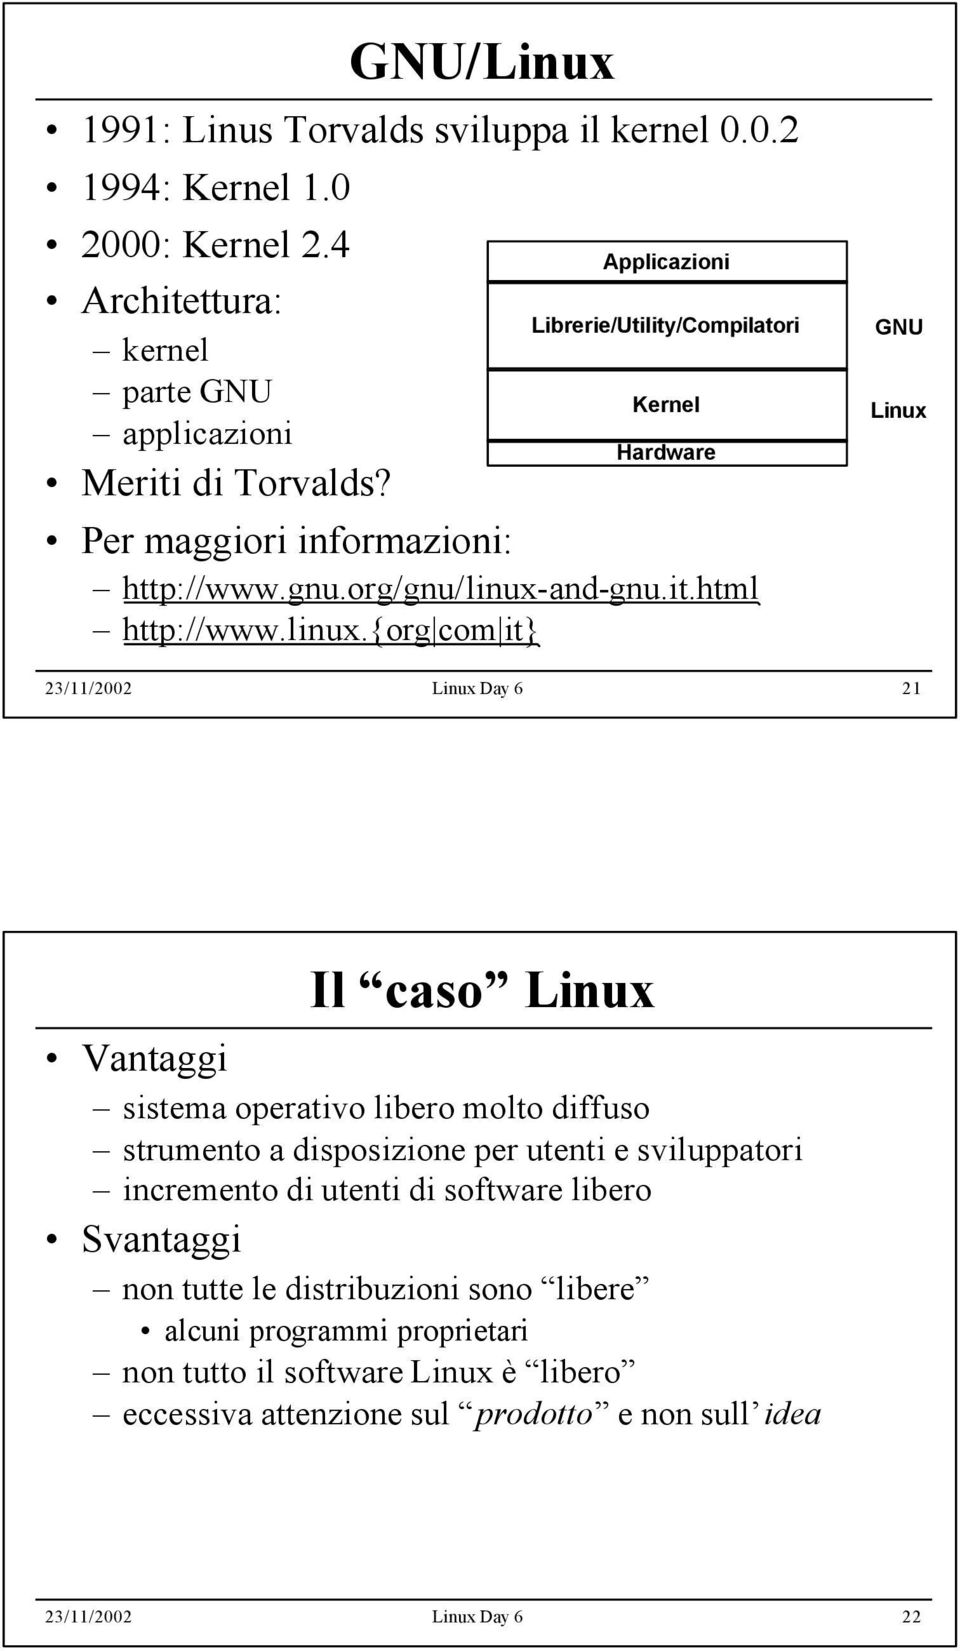 and-gnu.it.html http://www.linux.